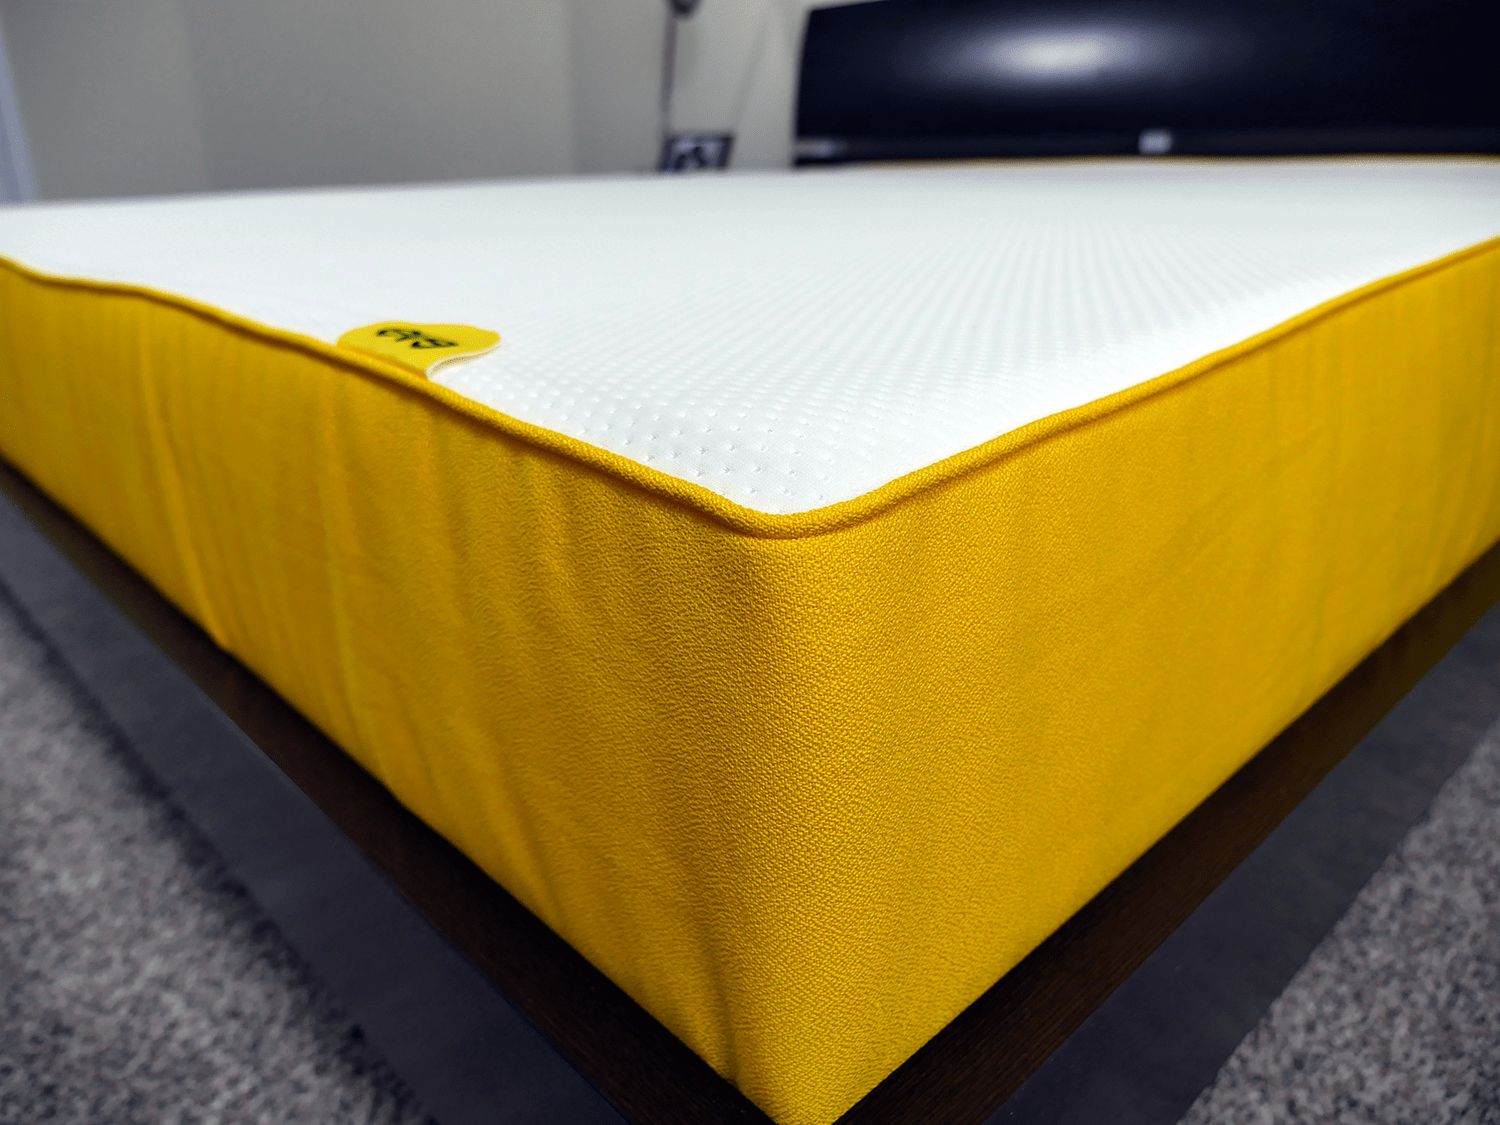 Close up of the Eve mattress cover